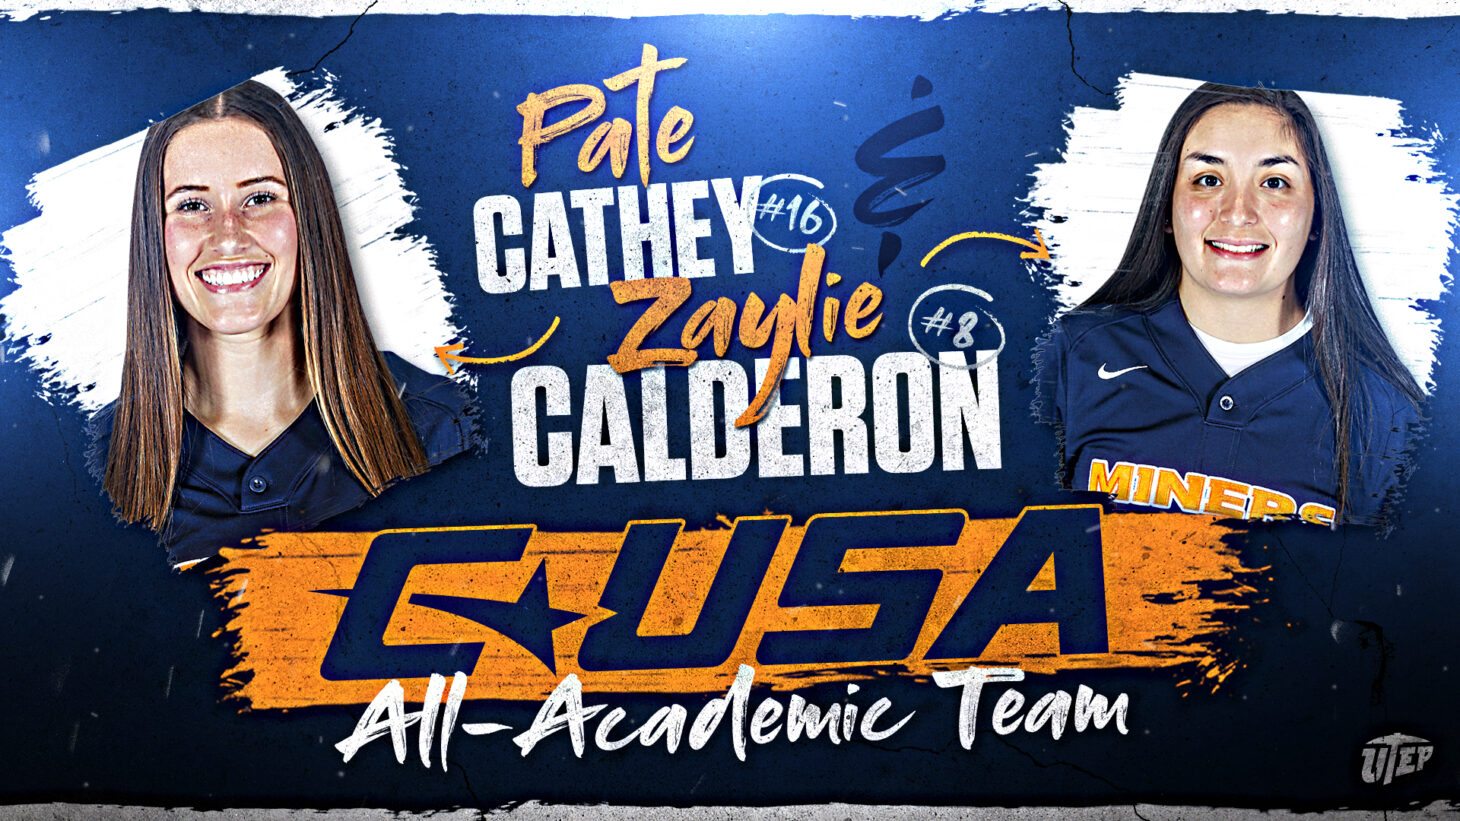 sophomore utility Zaylie Calderon and junior infielder Pate Cathey  | Graphic courtesy UTEP